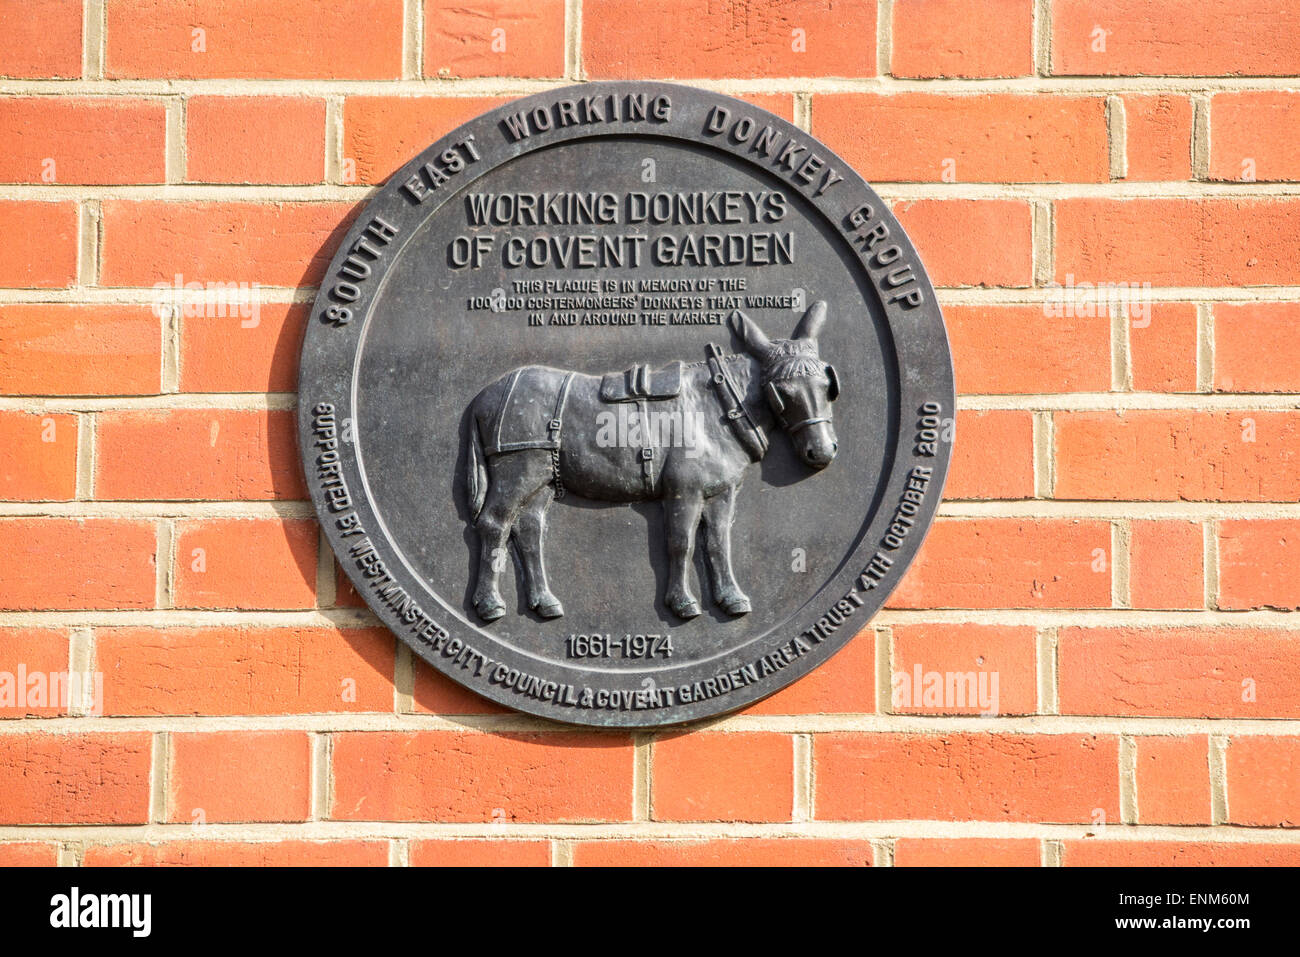 Terrific Plaque In Europe Stock Photos  Plaque In Europe Stock Images  Alamy With Fascinating Wall Plaque Commemorating The Working Donkeys Of Covent Garden Used By  Costermongers In The West With Attractive Primrose Gardens Also Poundstretcher Garden Products In Addition The Garden Party Havel And Garden Sheds Uk As Well As Hi Way Garden Center Hours Additionally Richardsons Garden Centre From Alamycom With   Fascinating Plaque In Europe Stock Photos  Plaque In Europe Stock Images  Alamy With Attractive Wall Plaque Commemorating The Working Donkeys Of Covent Garden Used By  Costermongers In The West And Terrific Primrose Gardens Also Poundstretcher Garden Products In Addition The Garden Party Havel From Alamycom